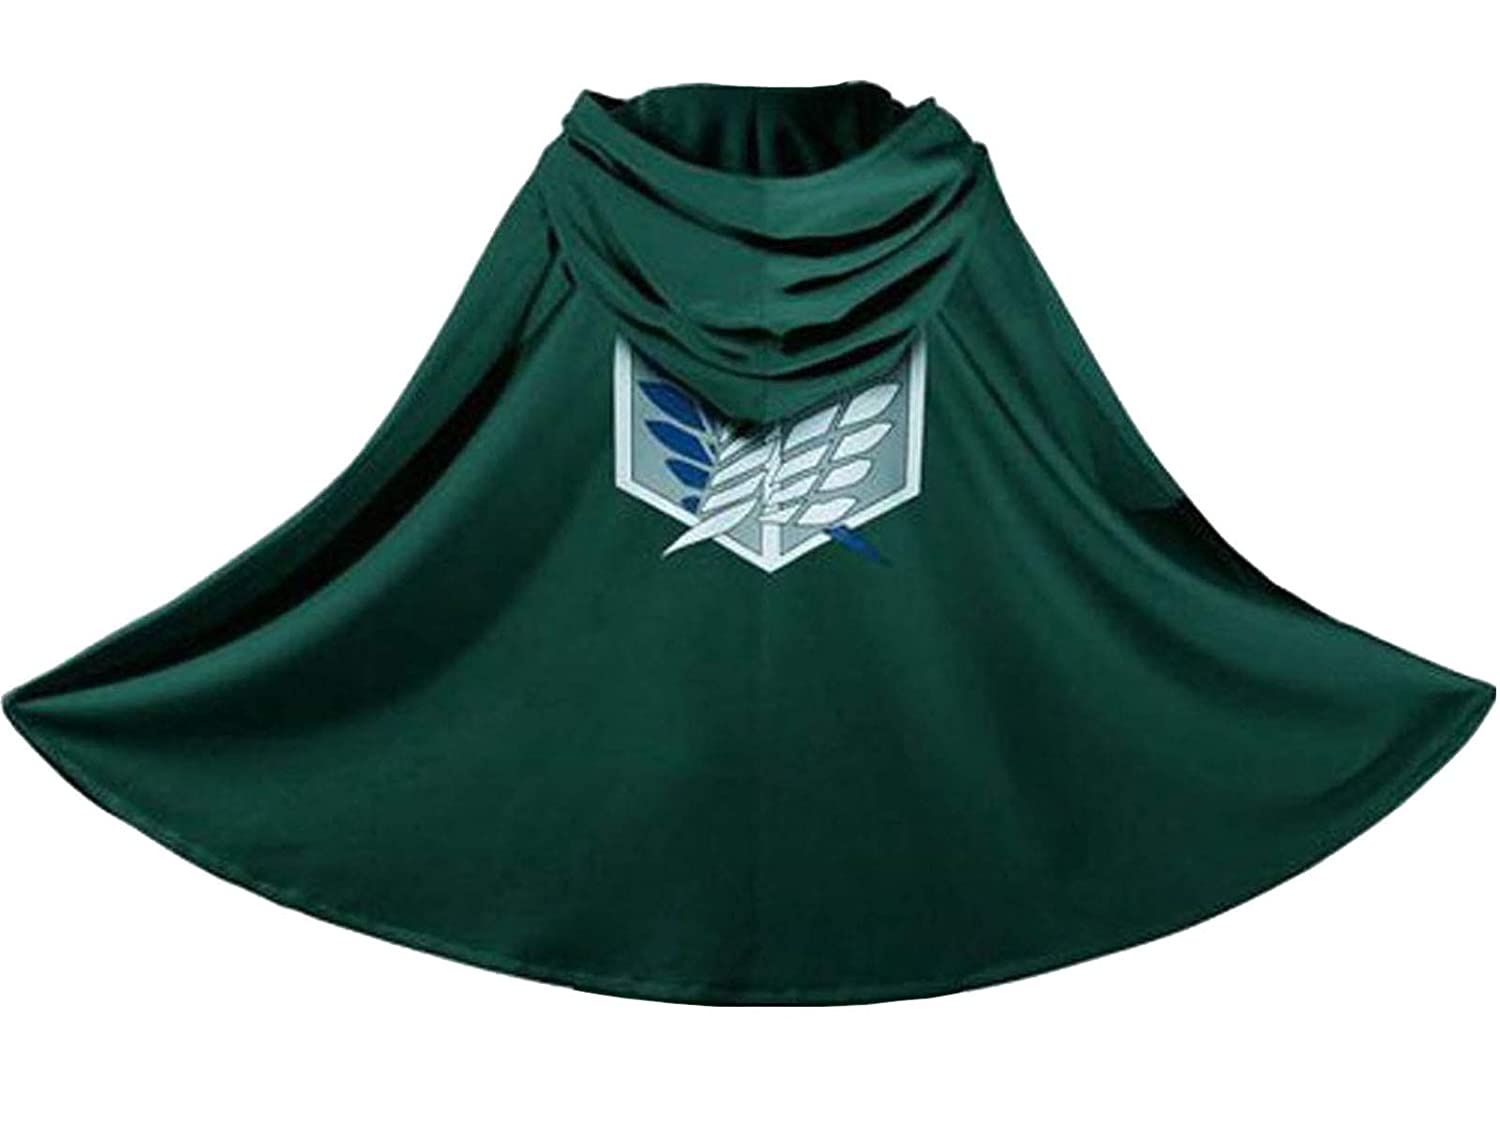 Attack on Titan Japanese Anime Shingeki no Kyojin Cloak Cape Clothes Cosplay AOTGN05